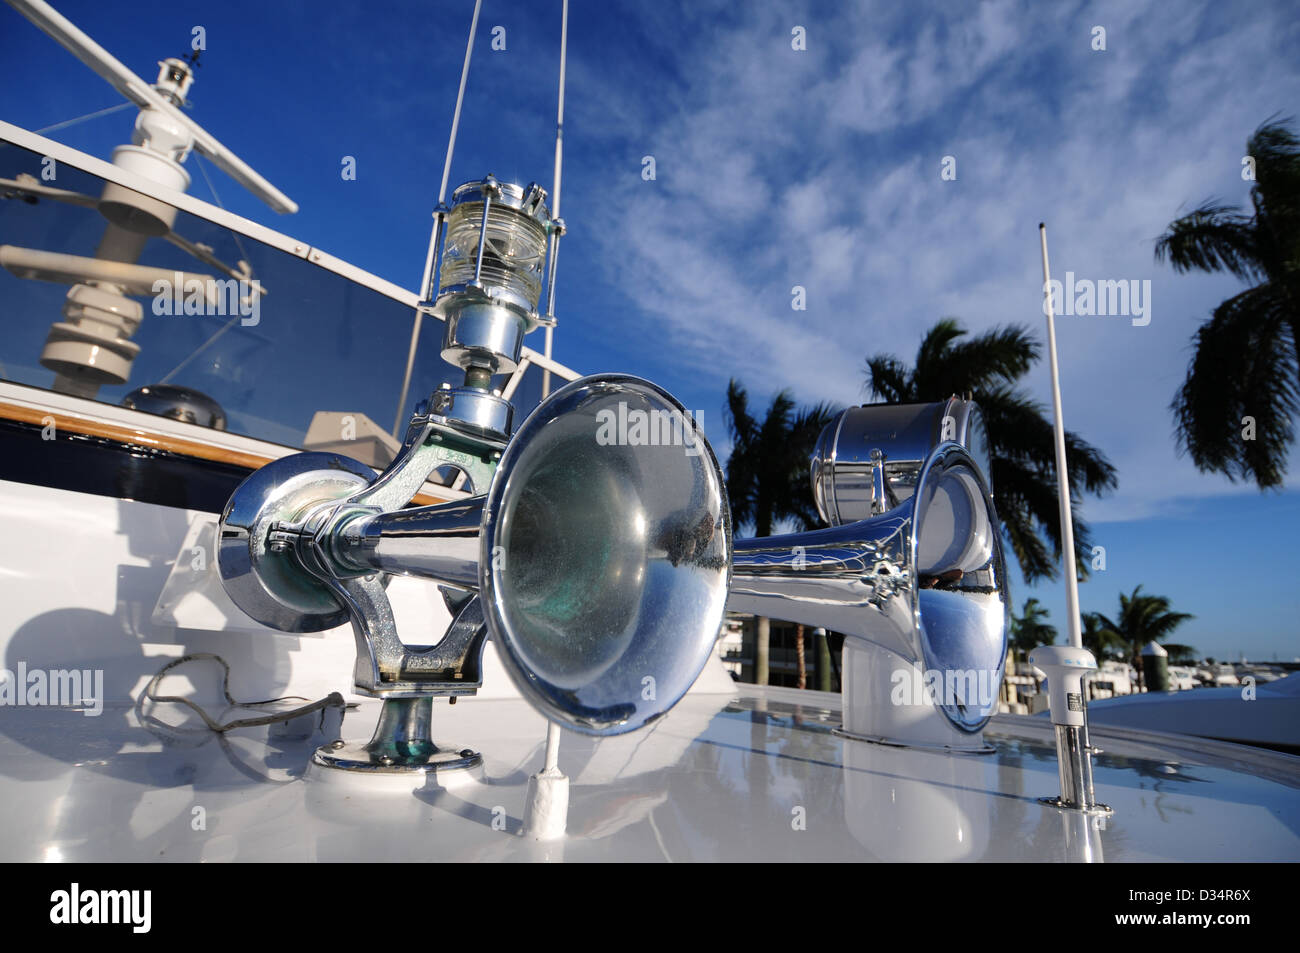 boat horn and light on a yacht with palm trees in background - Stock Image